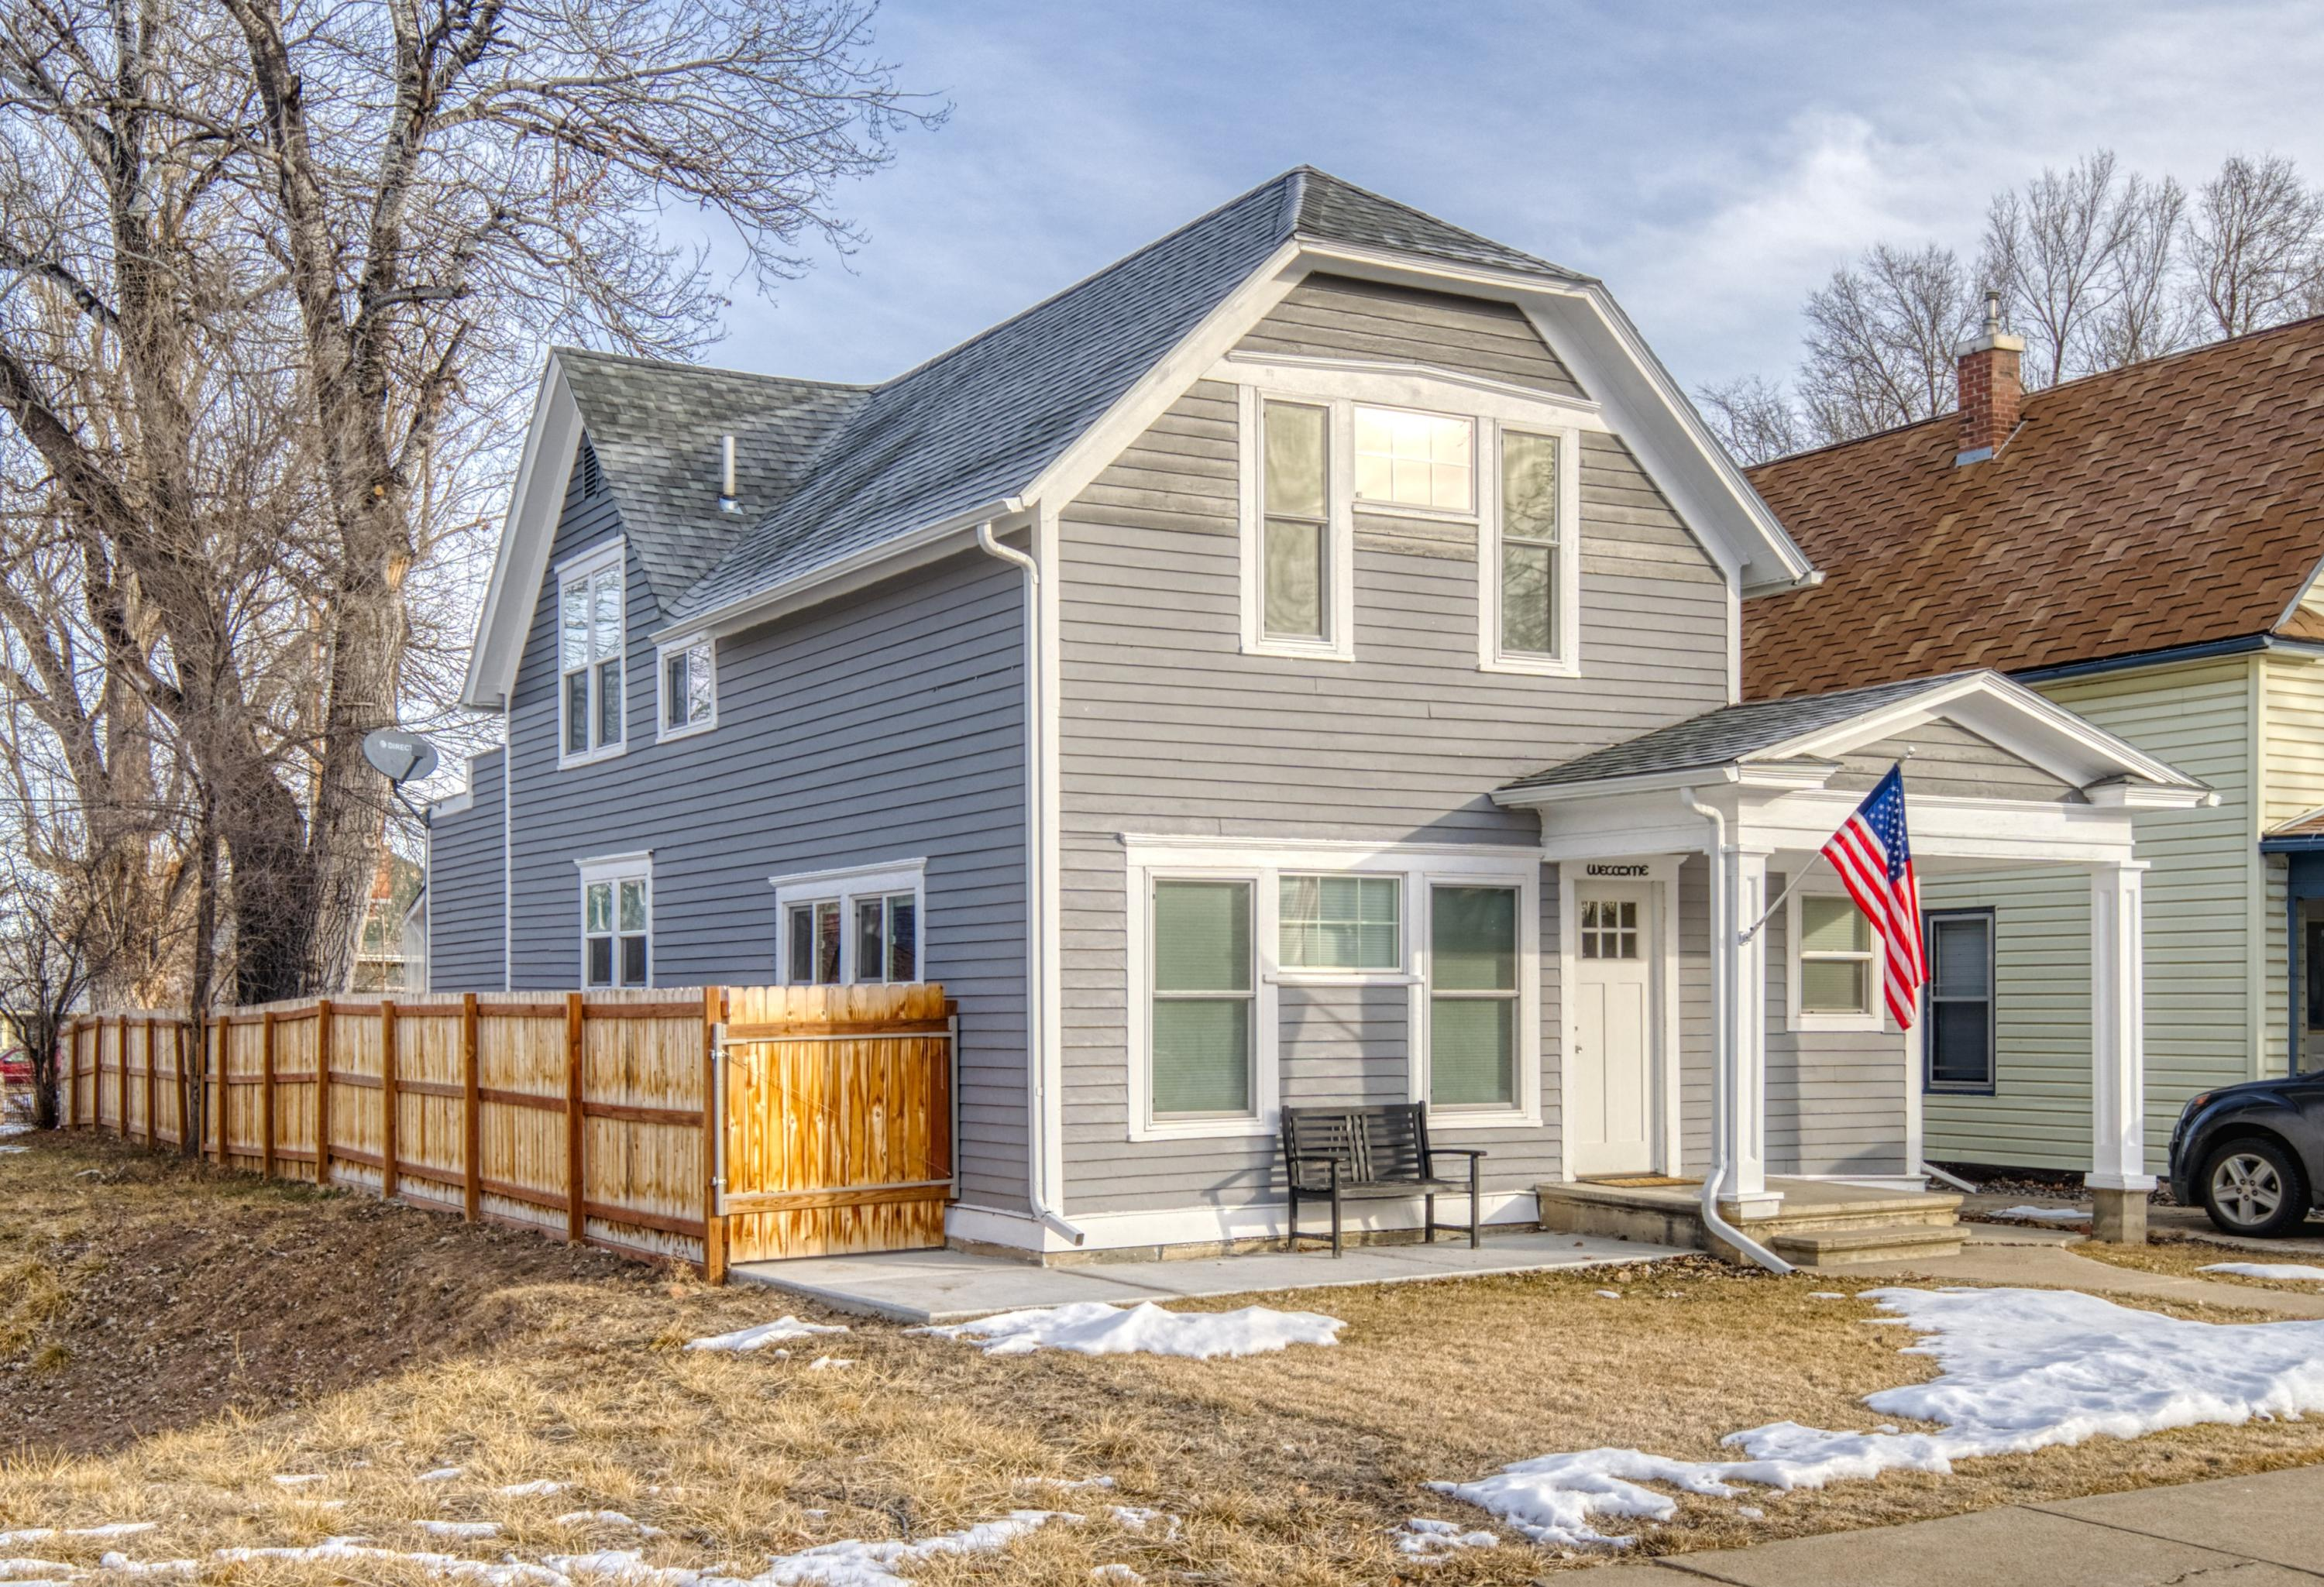 425 W Works Street, Sheridan, Wyoming 82801, 4 Bedrooms Bedrooms, ,2 BathroomsBathrooms,Residential,For Sale,Works,19-84